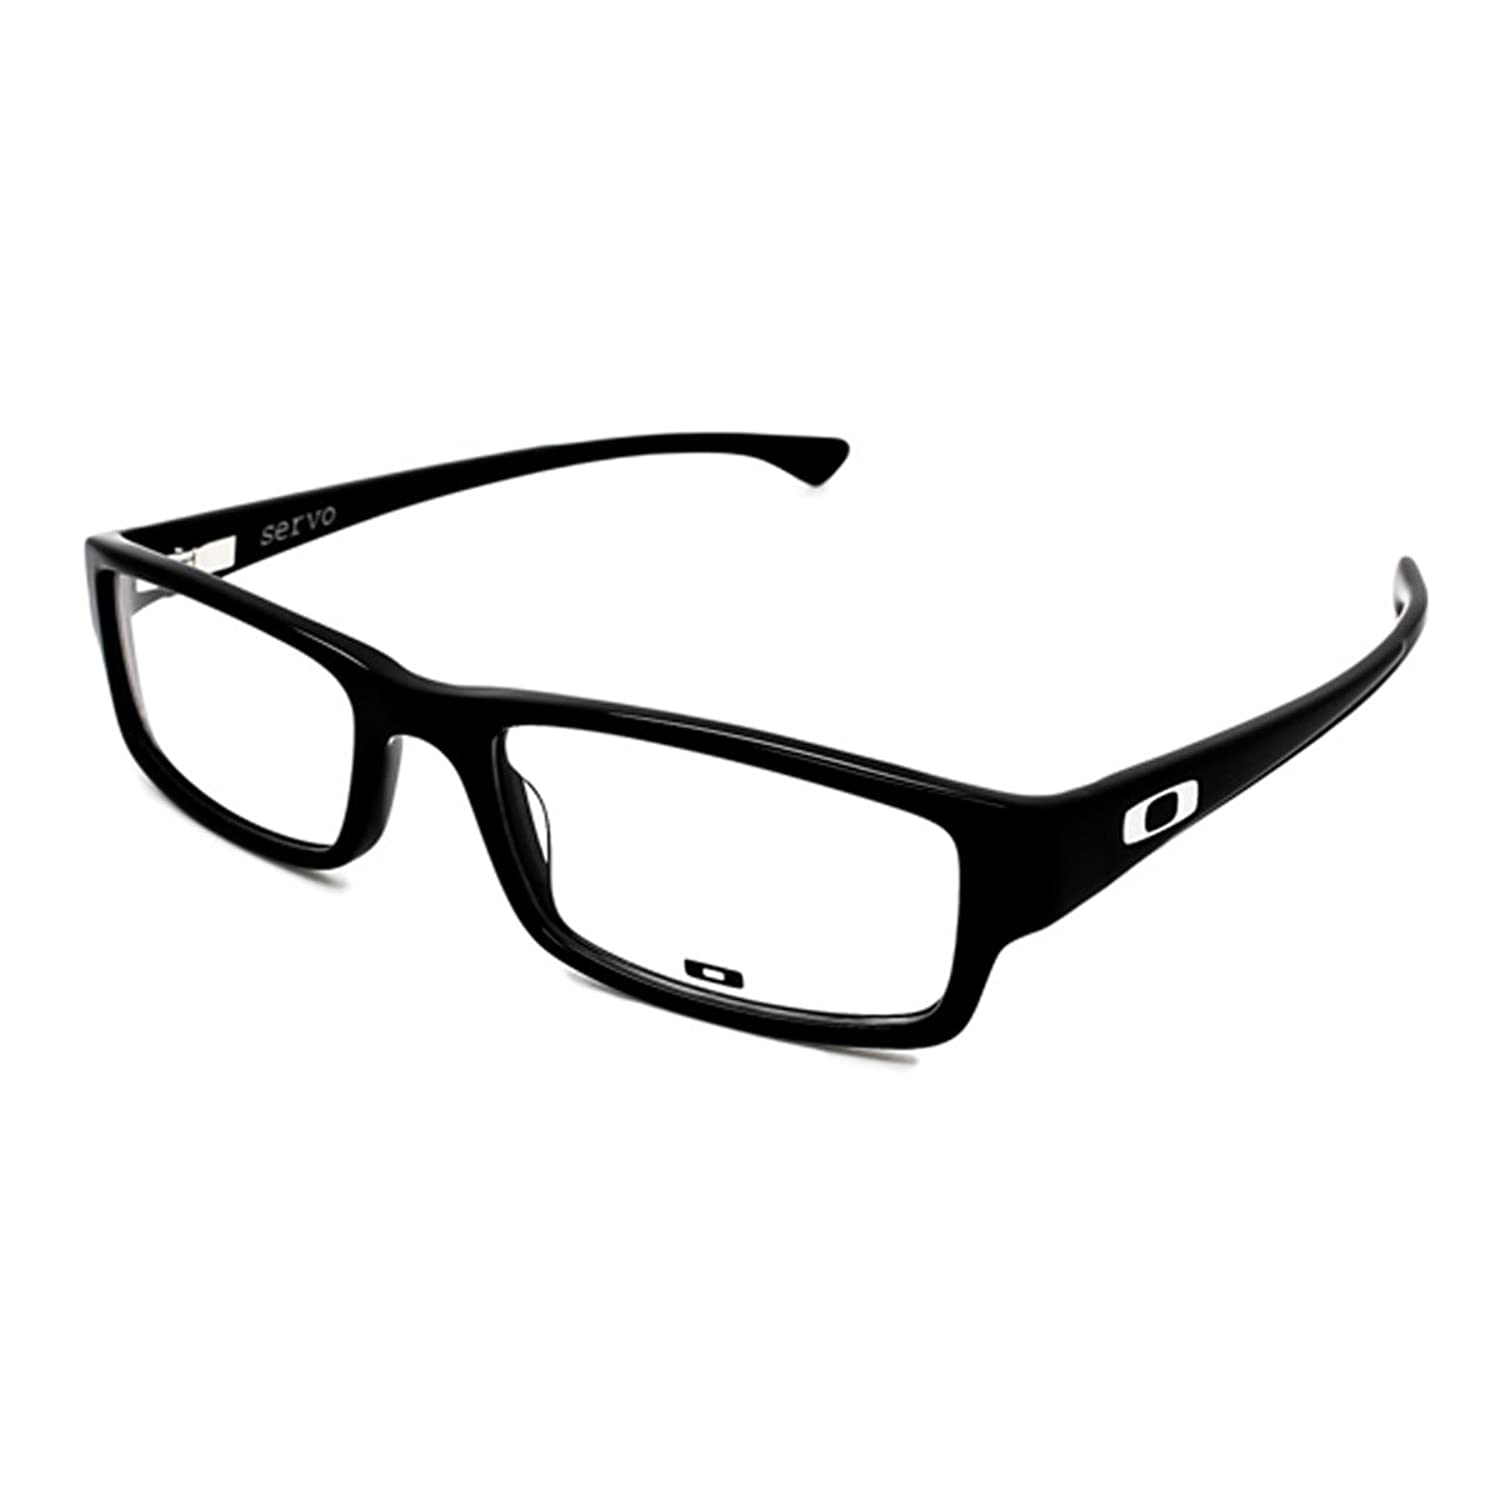 how to repair oakley glasses  amazon: oakley ox1066 01 servo eyeglasses polished black 53mm: oakley: health & personal care